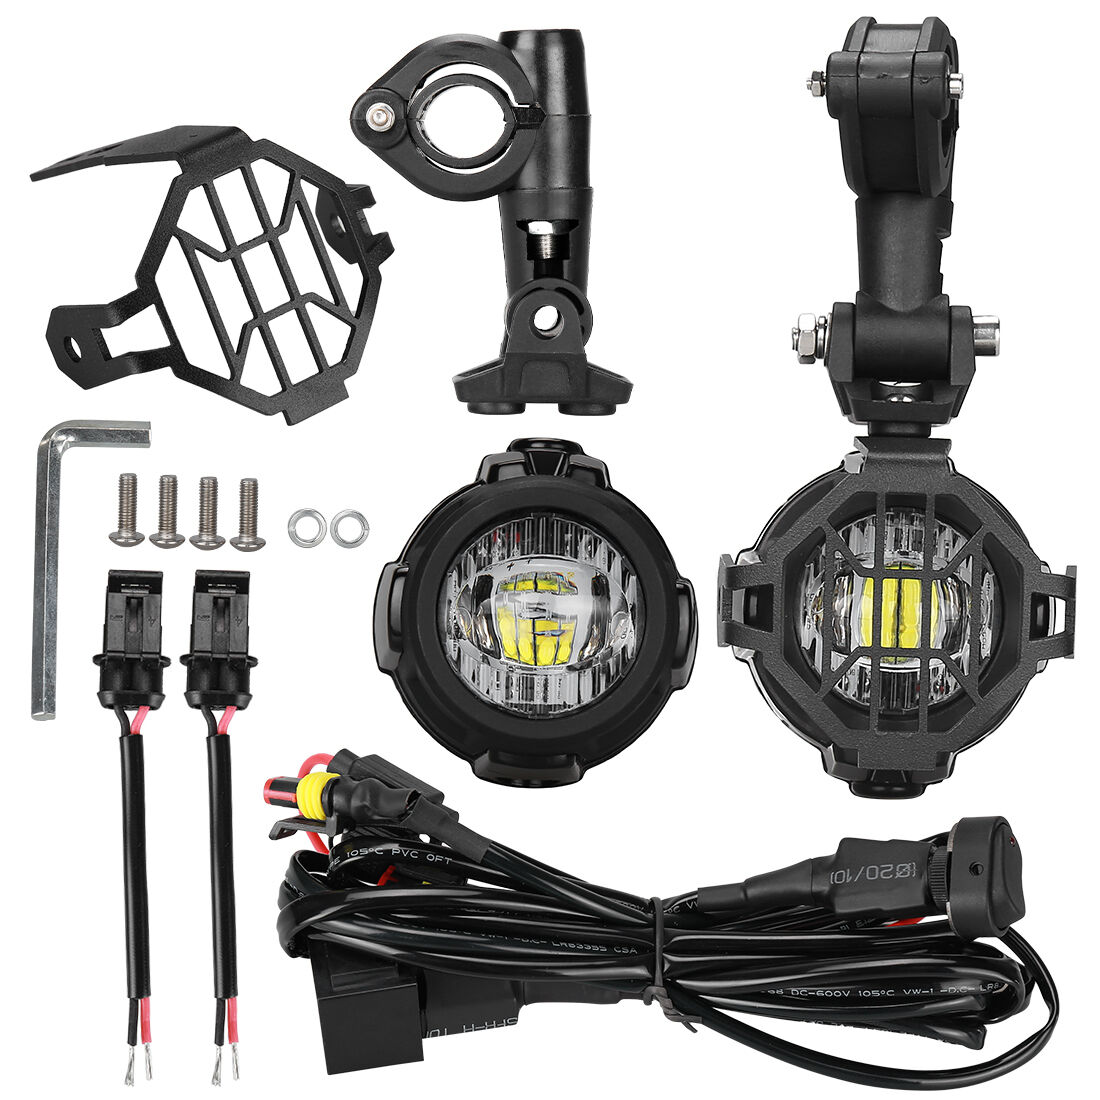 Bmw Motorcycle Wiring Harness Diagram Sample Head Unit 2x Led Auxiliary Fog Light Protector Cover For Radio